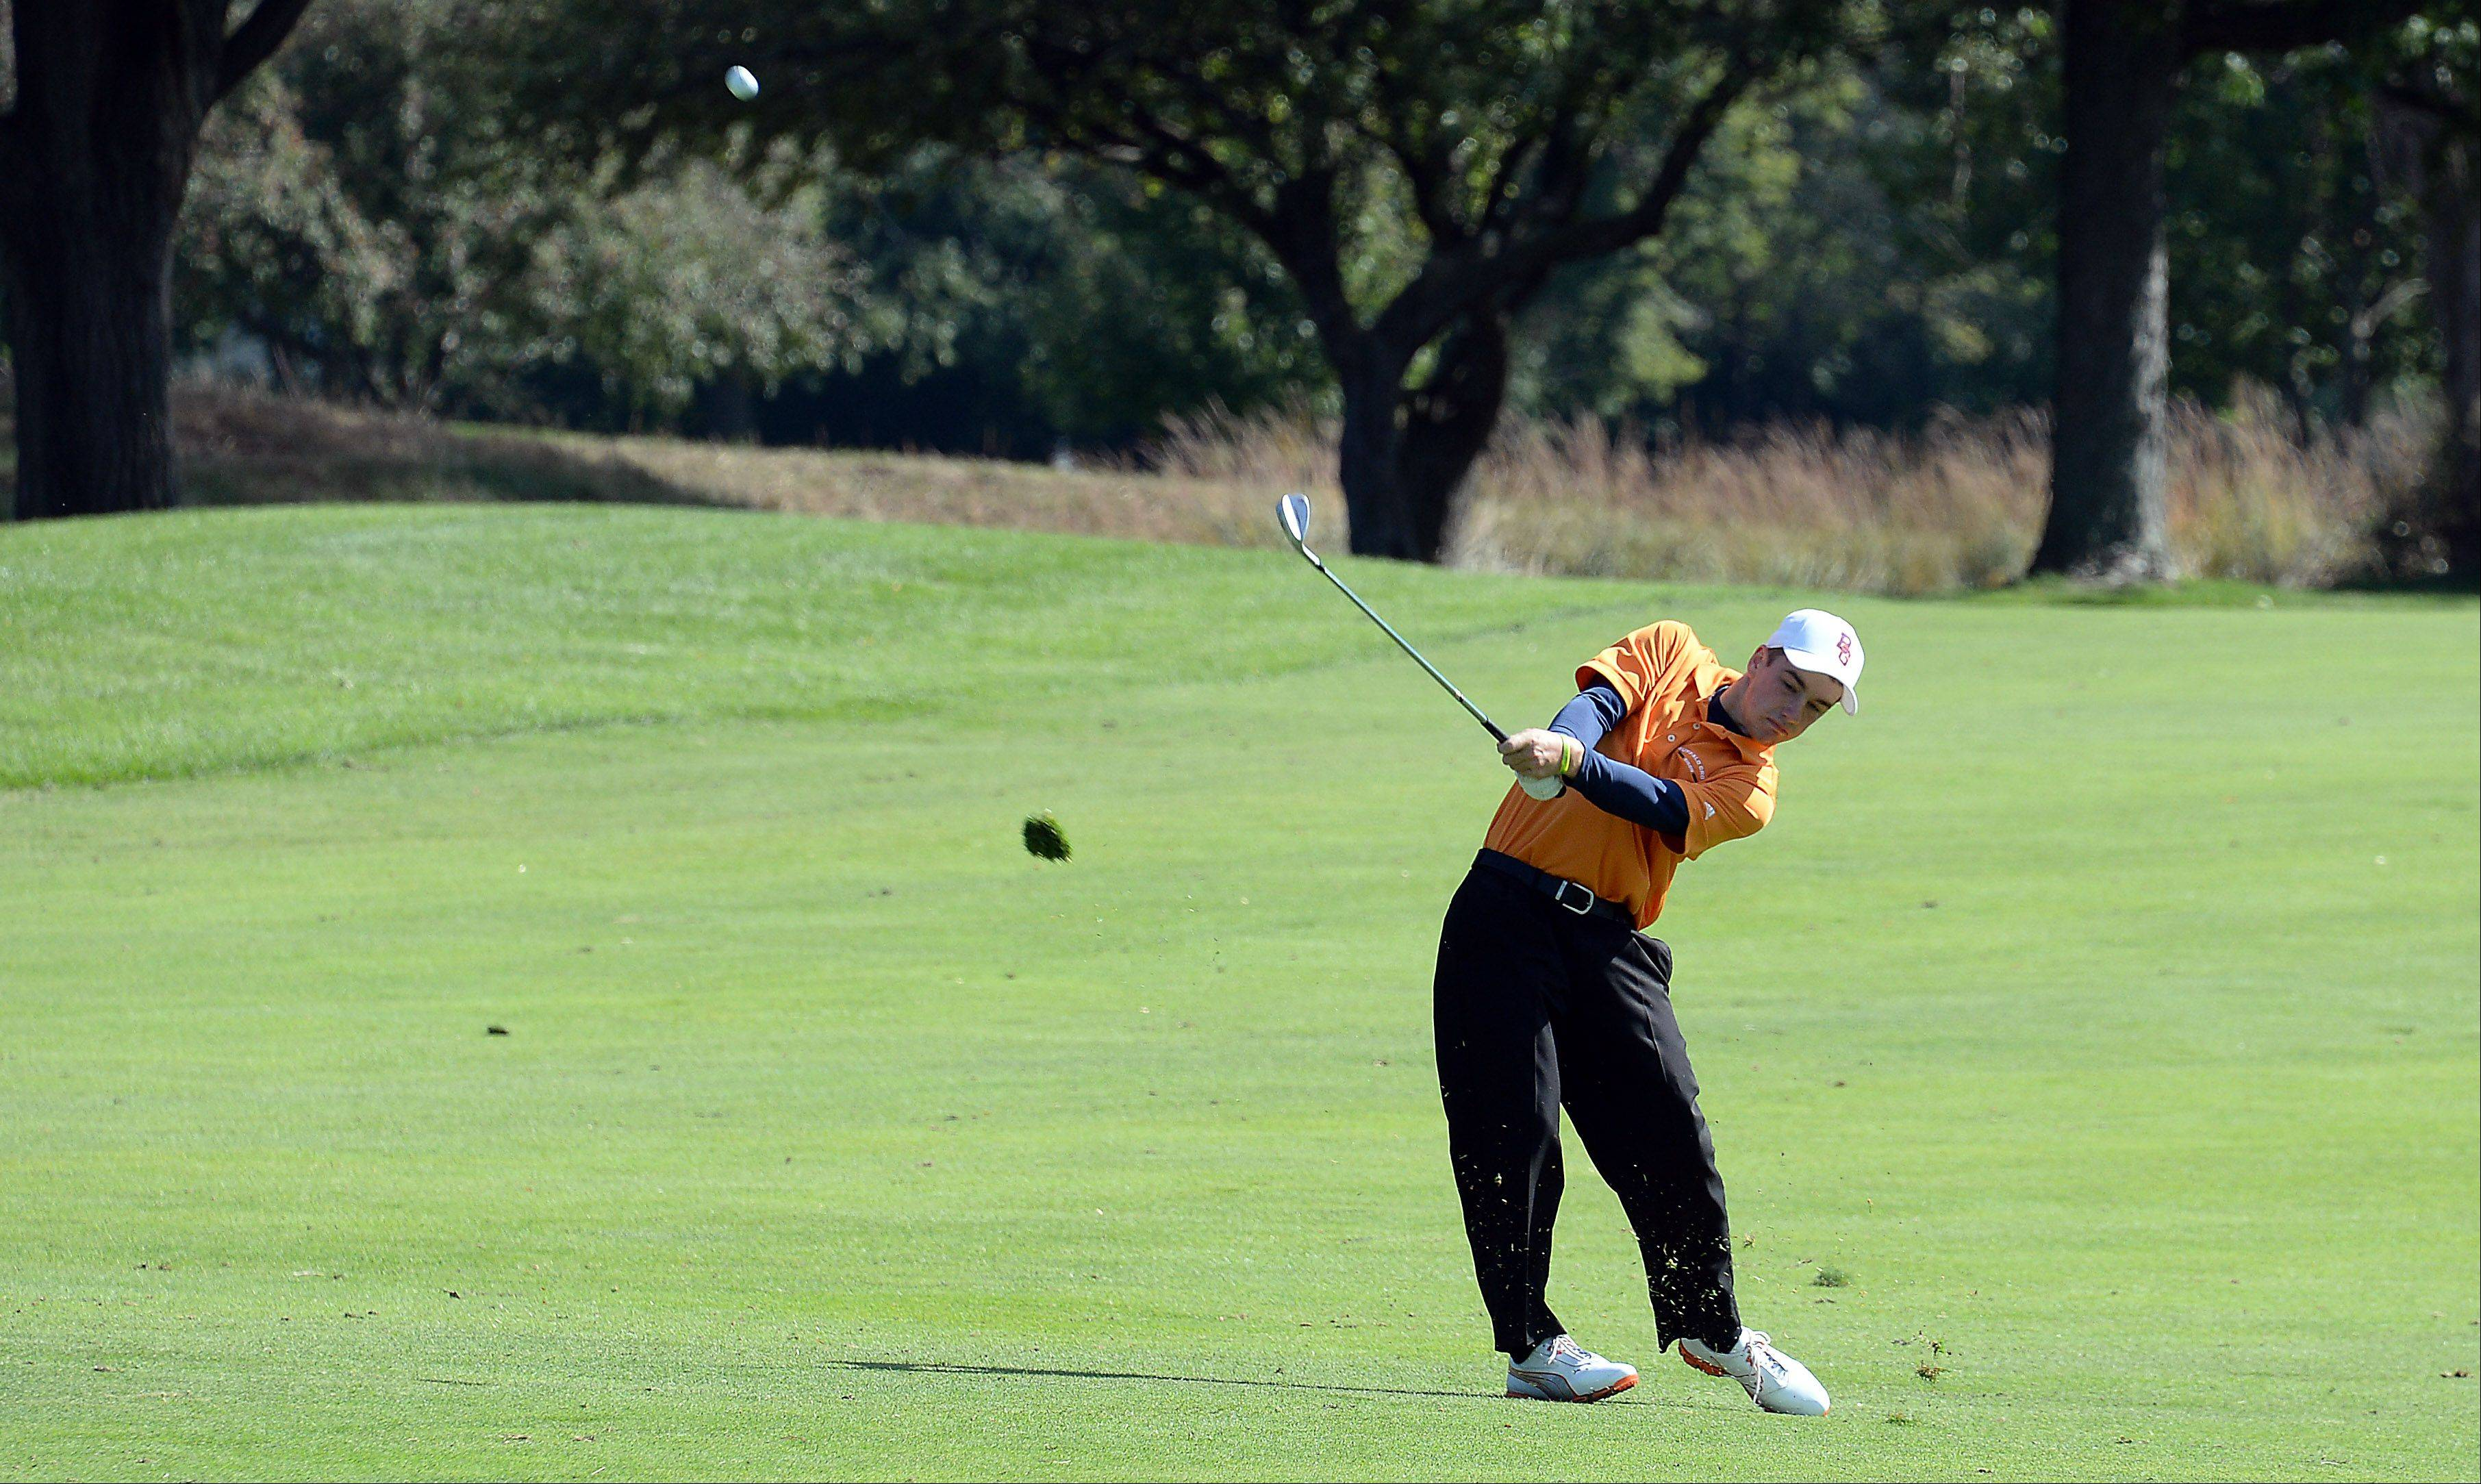 Buffalo Grove's Brandon Matchen drives down the fairway on No. 7 during the Mid-Suburban League championship at Schaumburg Golf Club on Monday.